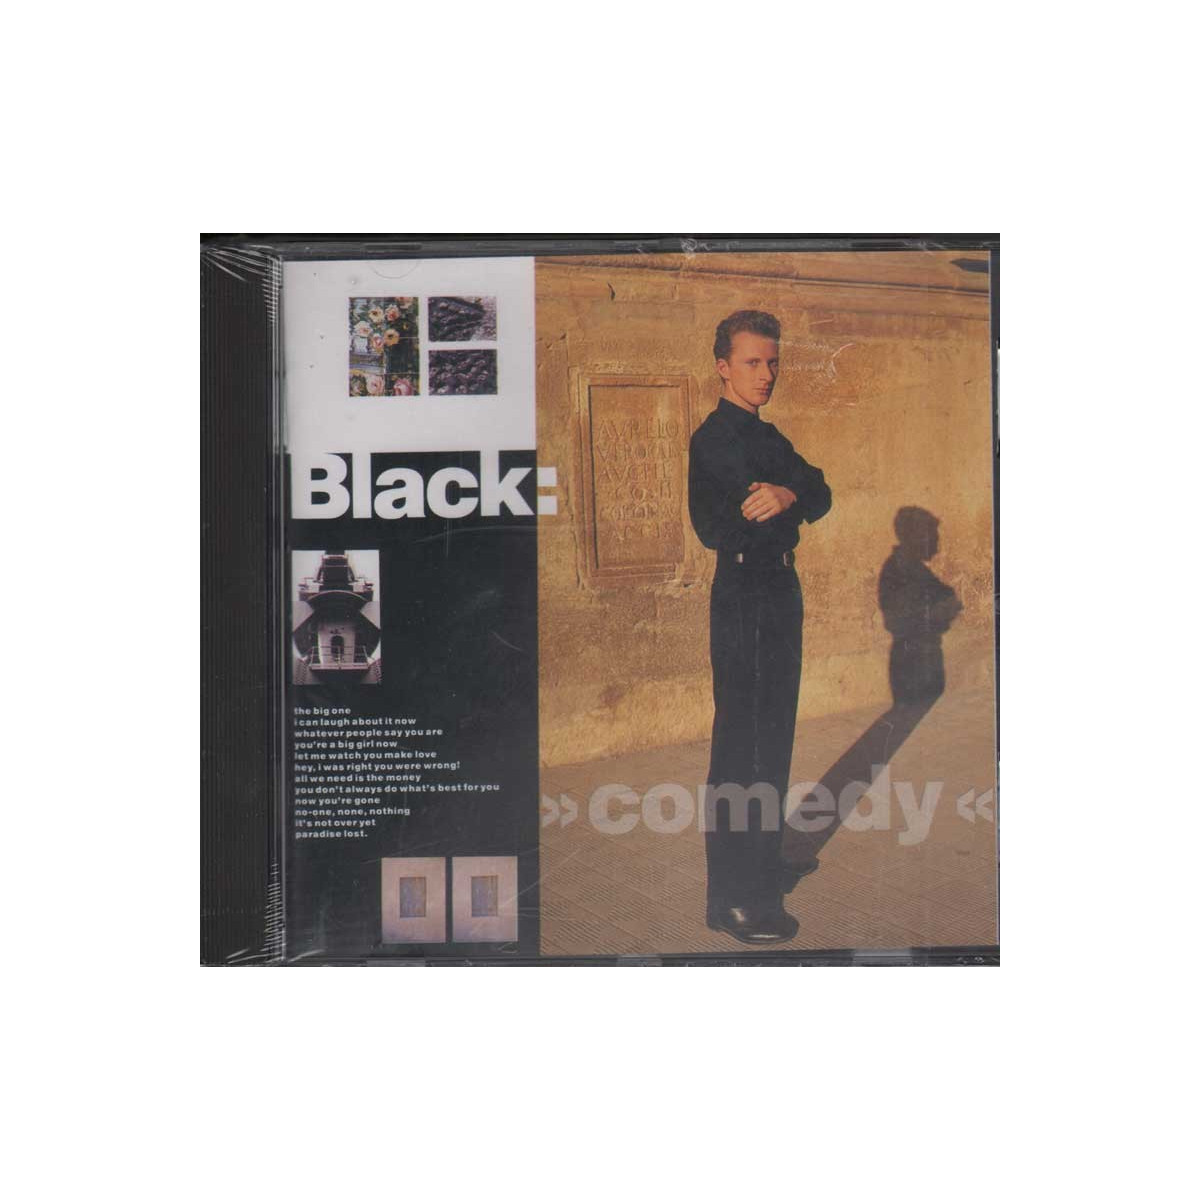 Black CD Comedy Nuovo Sigillato 0082839522229